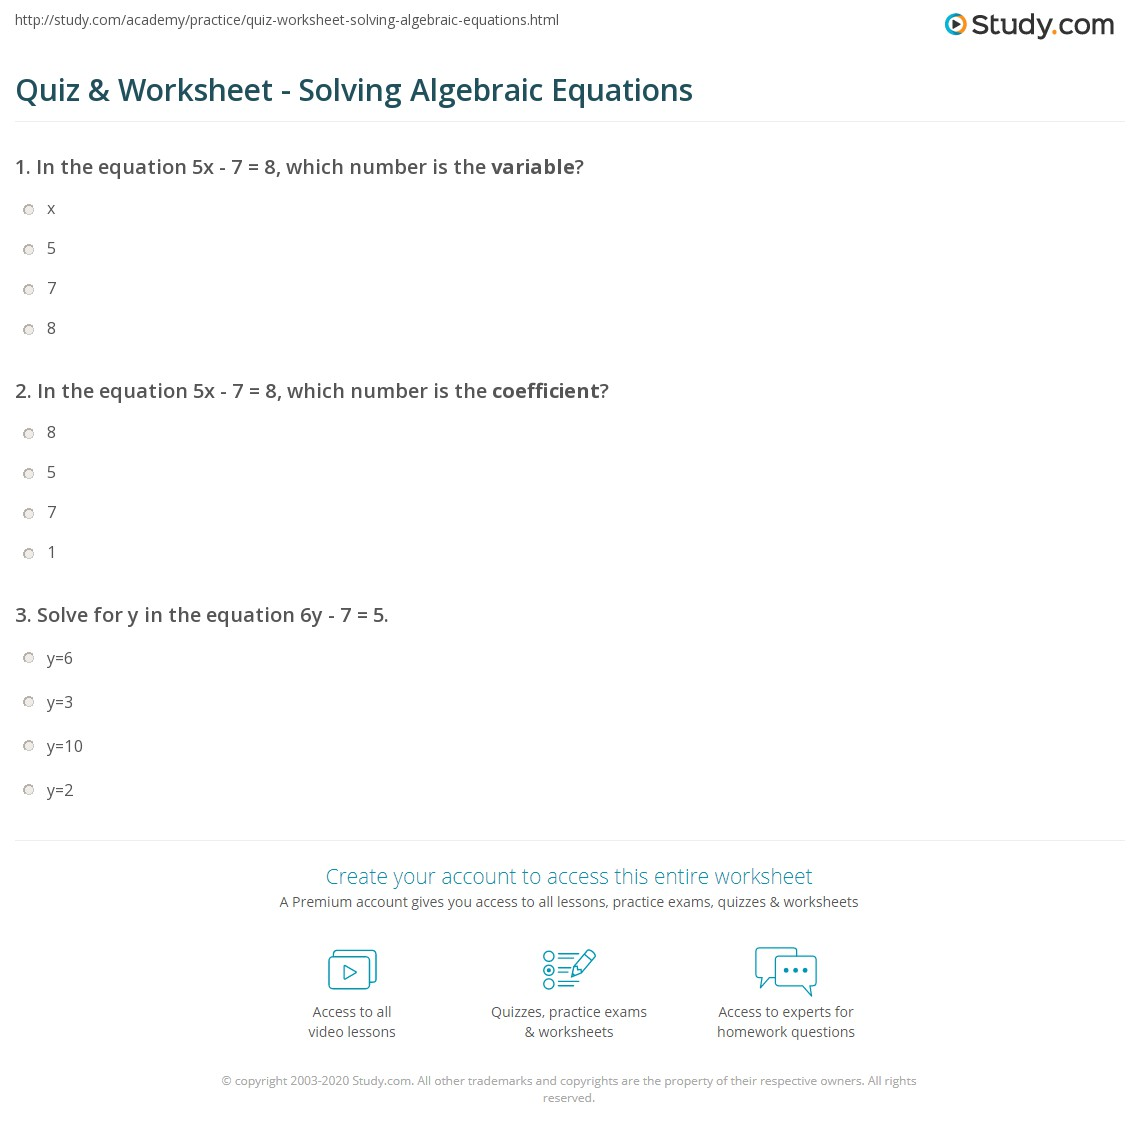 Worksheets Solving Algebraic Equations Worksheet quiz worksheet solving algebraic equations study com print definition examples worksheet